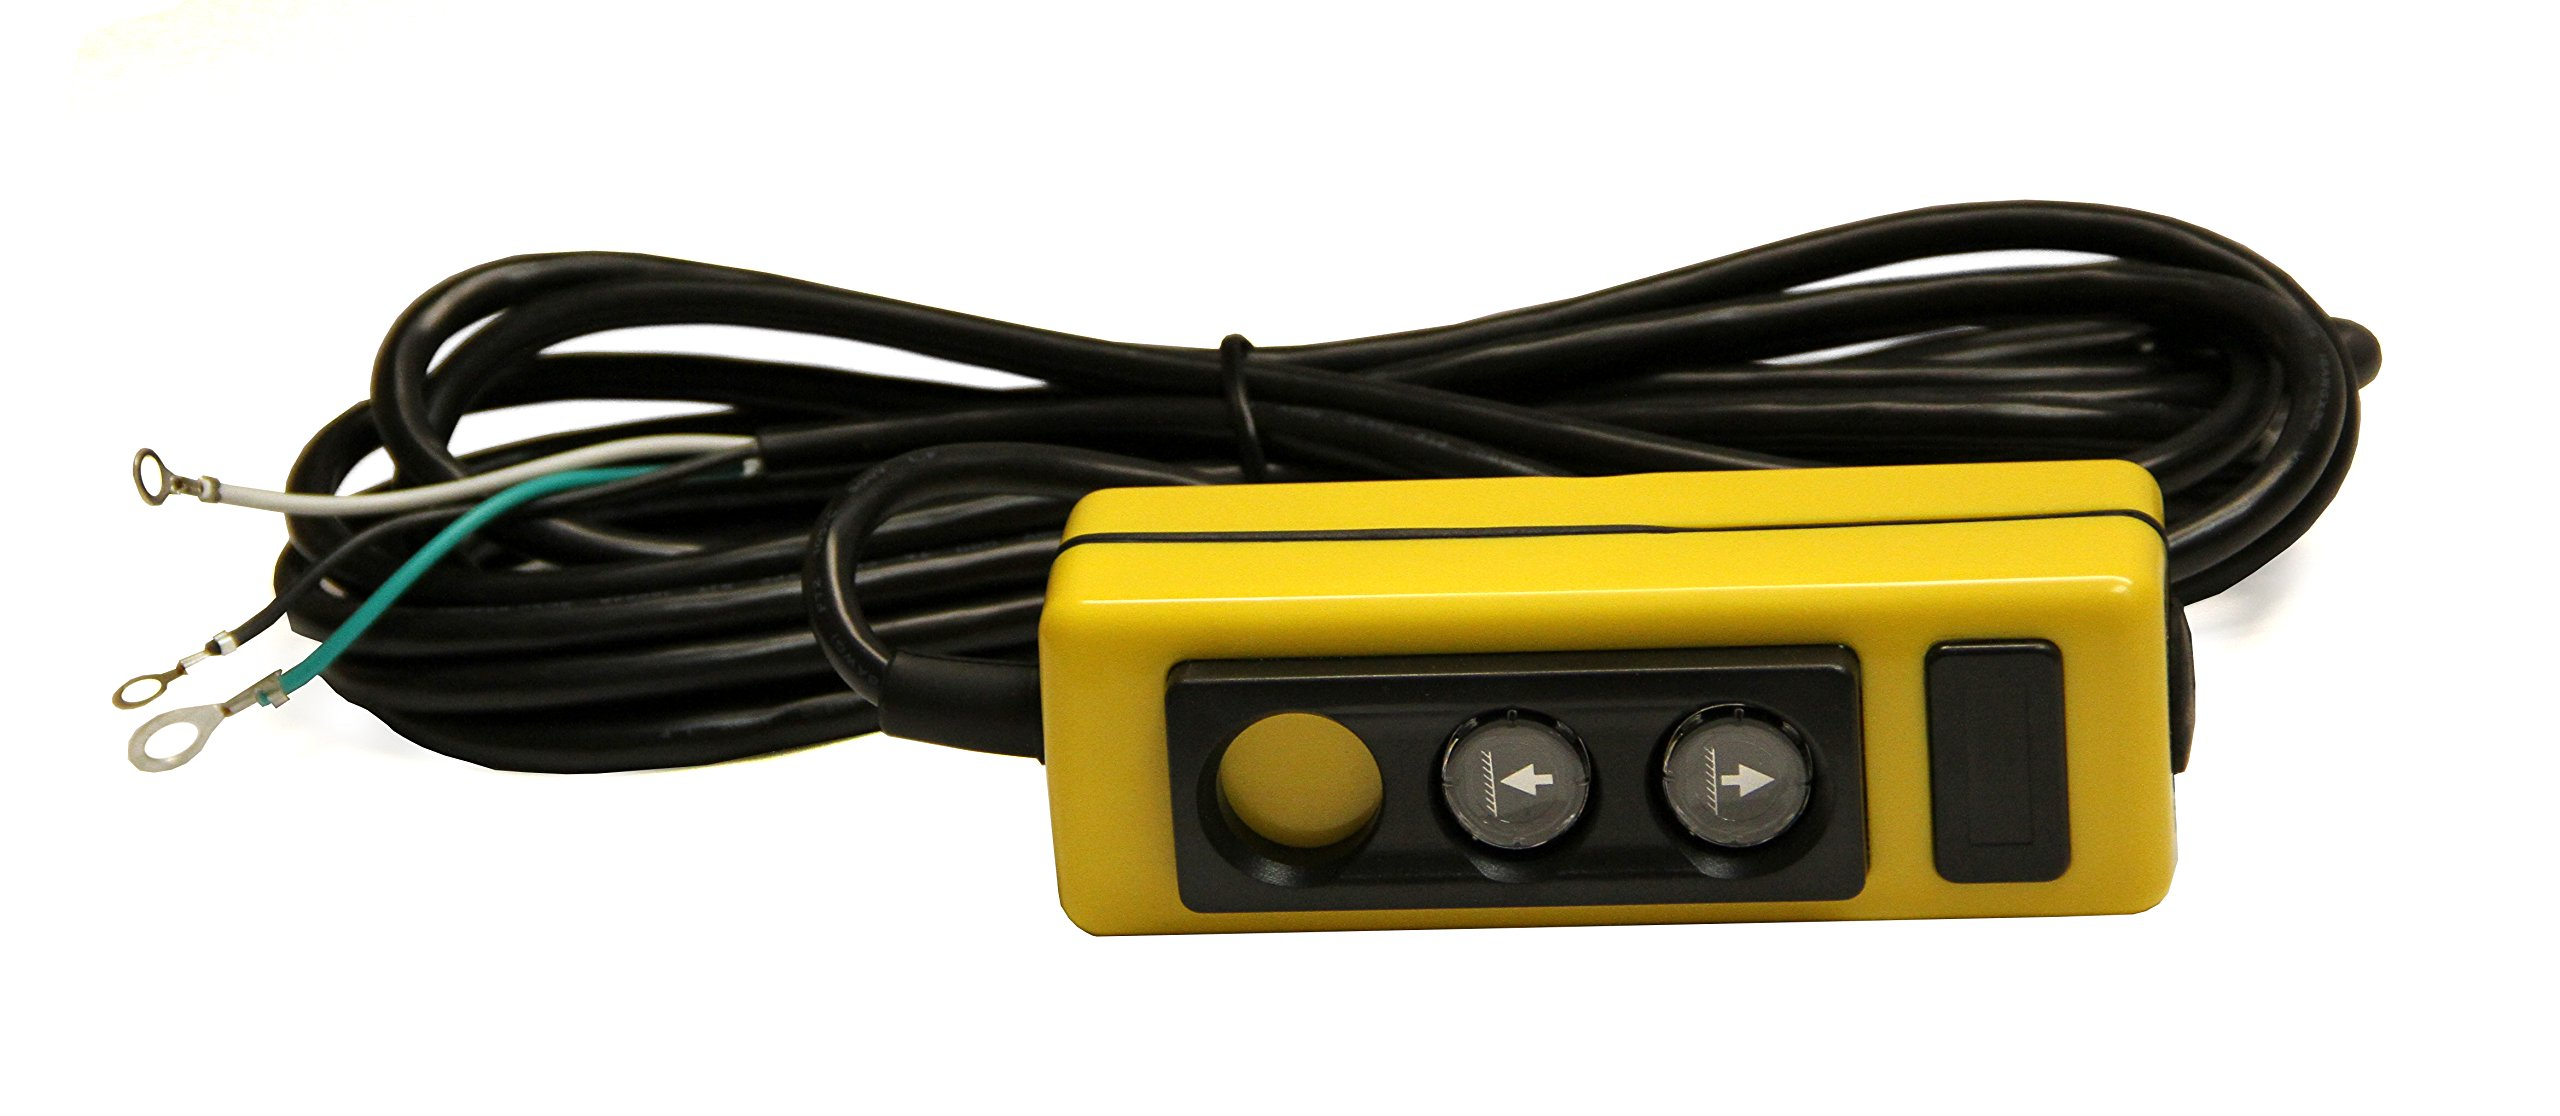 MAXIM HPU Remote: Single Acting, 2-Button (raise & lower), 20 ft Cord, 3 Wire, Magnet Included, 251153